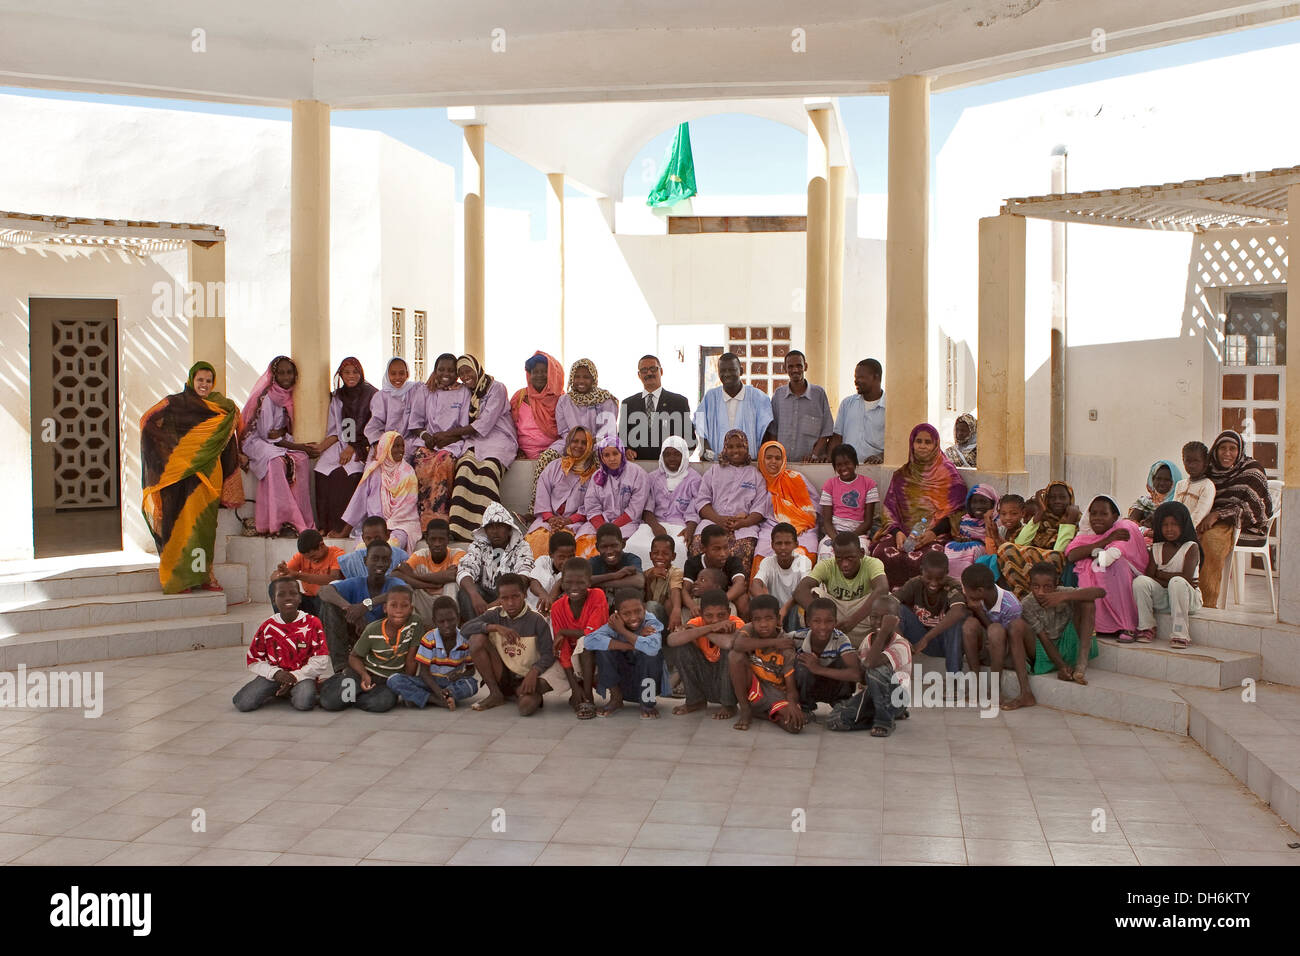 Students and teachers assembled in courtyard at school for disadvantaged and abandoned children, Nouakchott, Mauritania - Stock Image